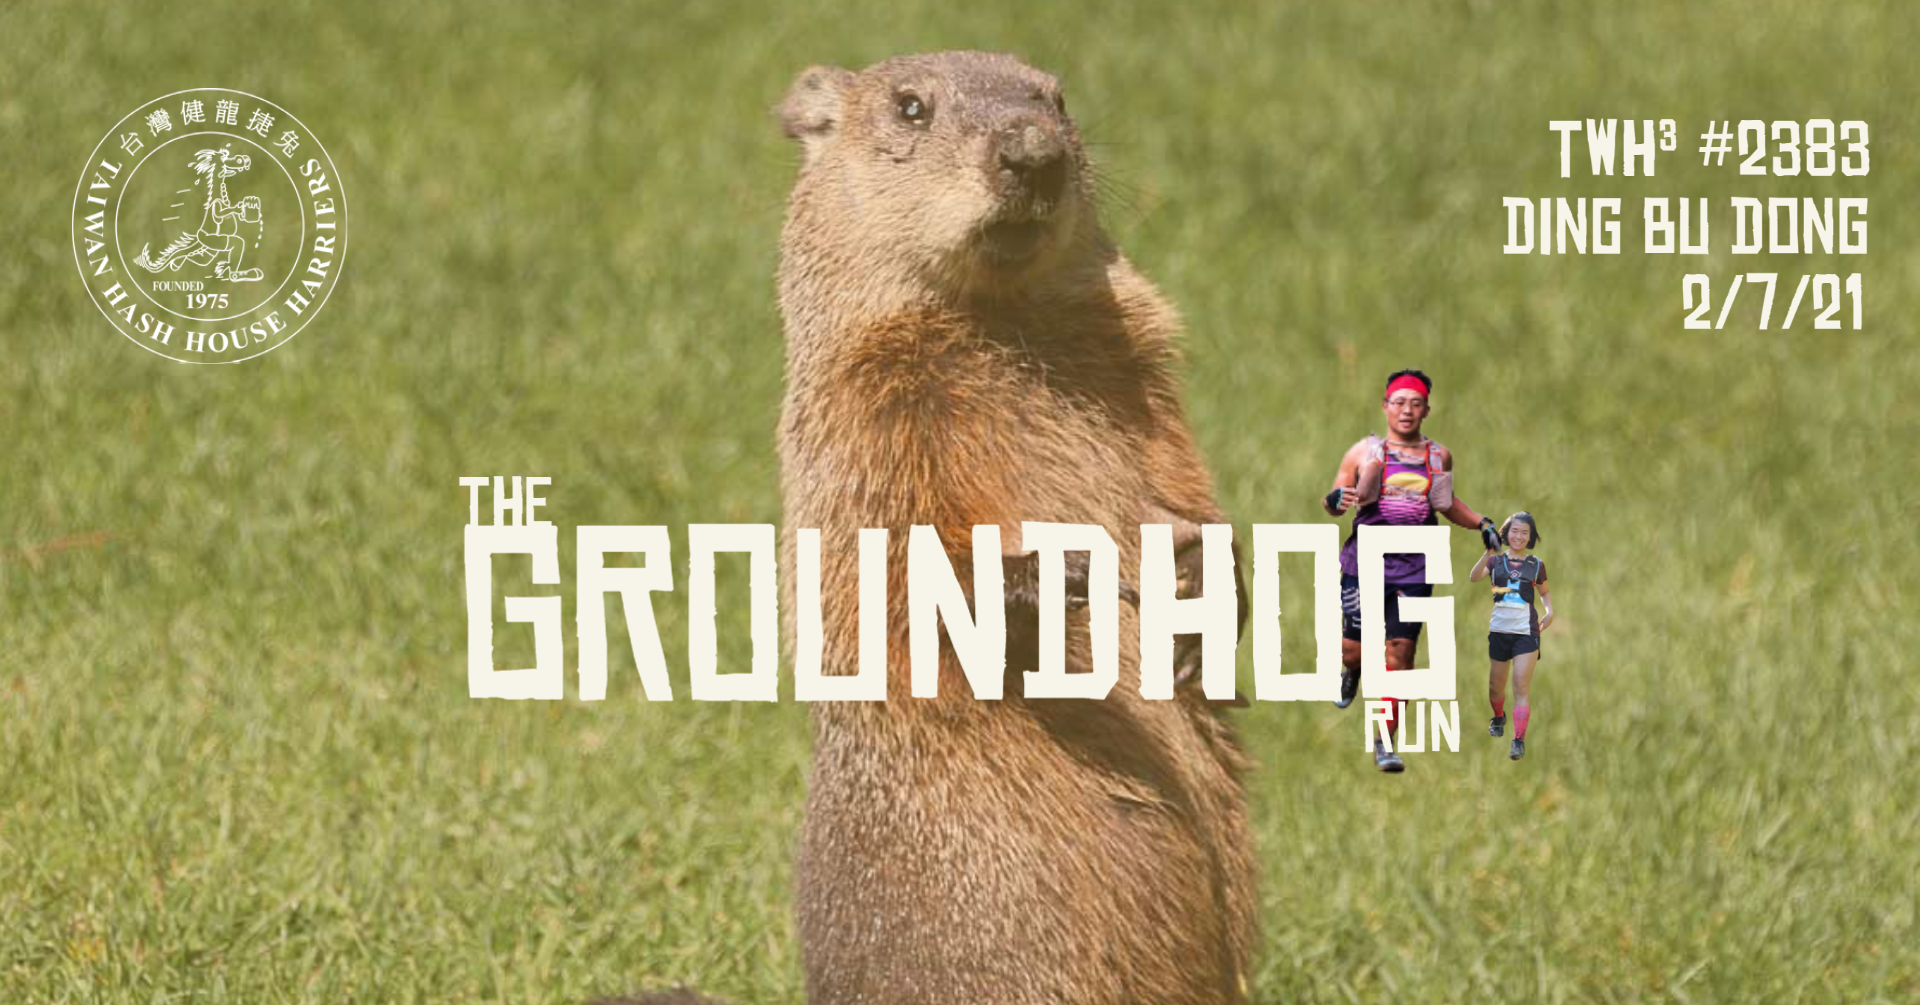 #2383 - The Groundhog Run